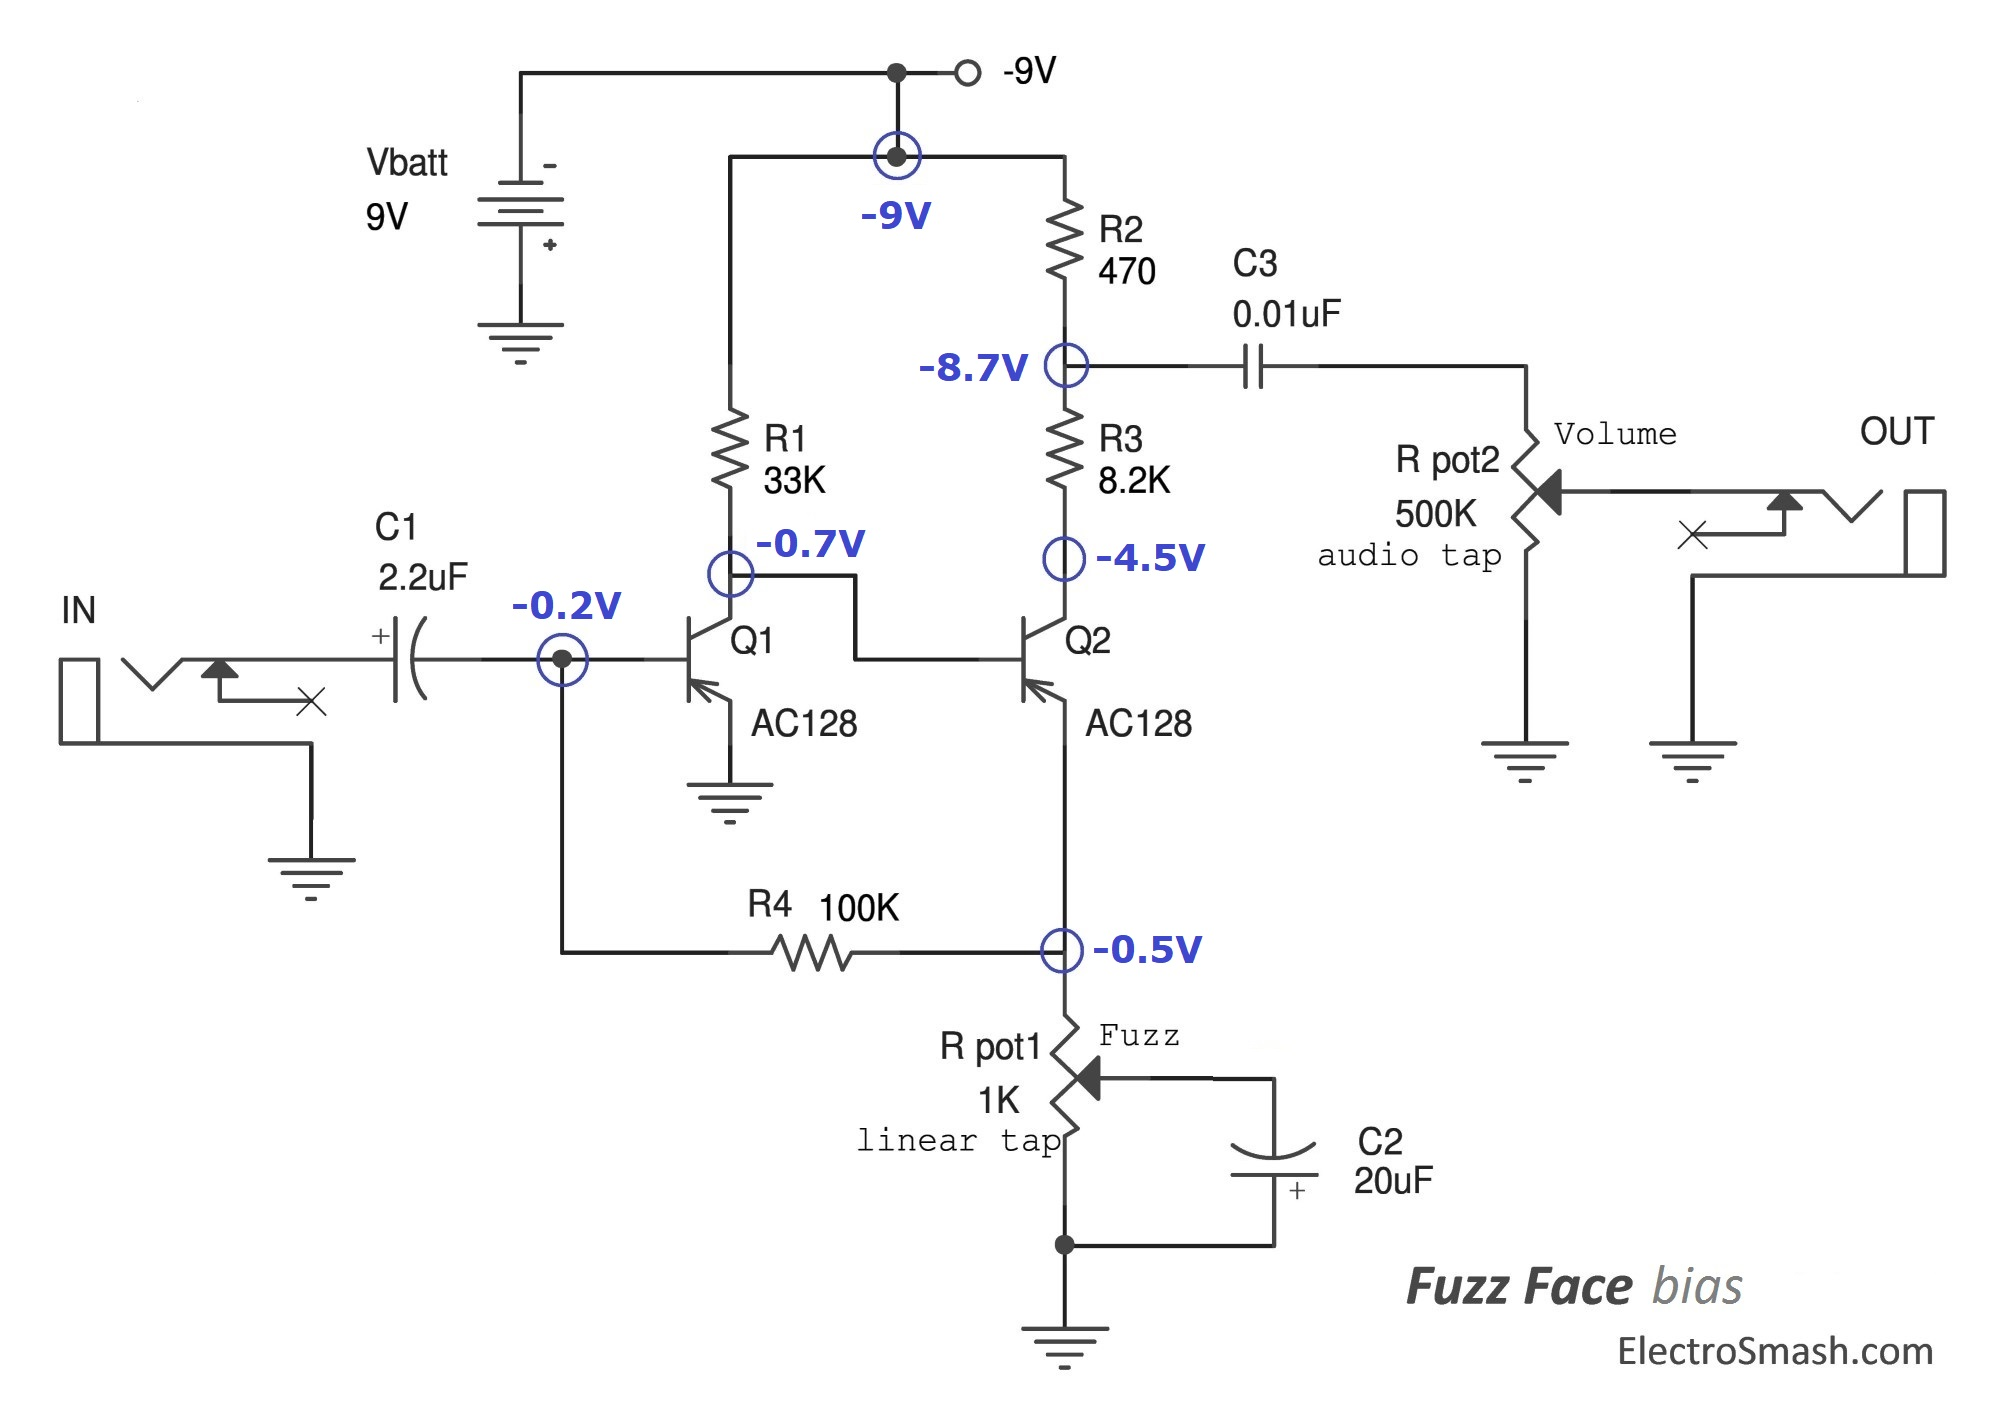 hight resolution of fuzz box 1 circuit schematic diagram wiring diagram filter box wiring diagram schematic